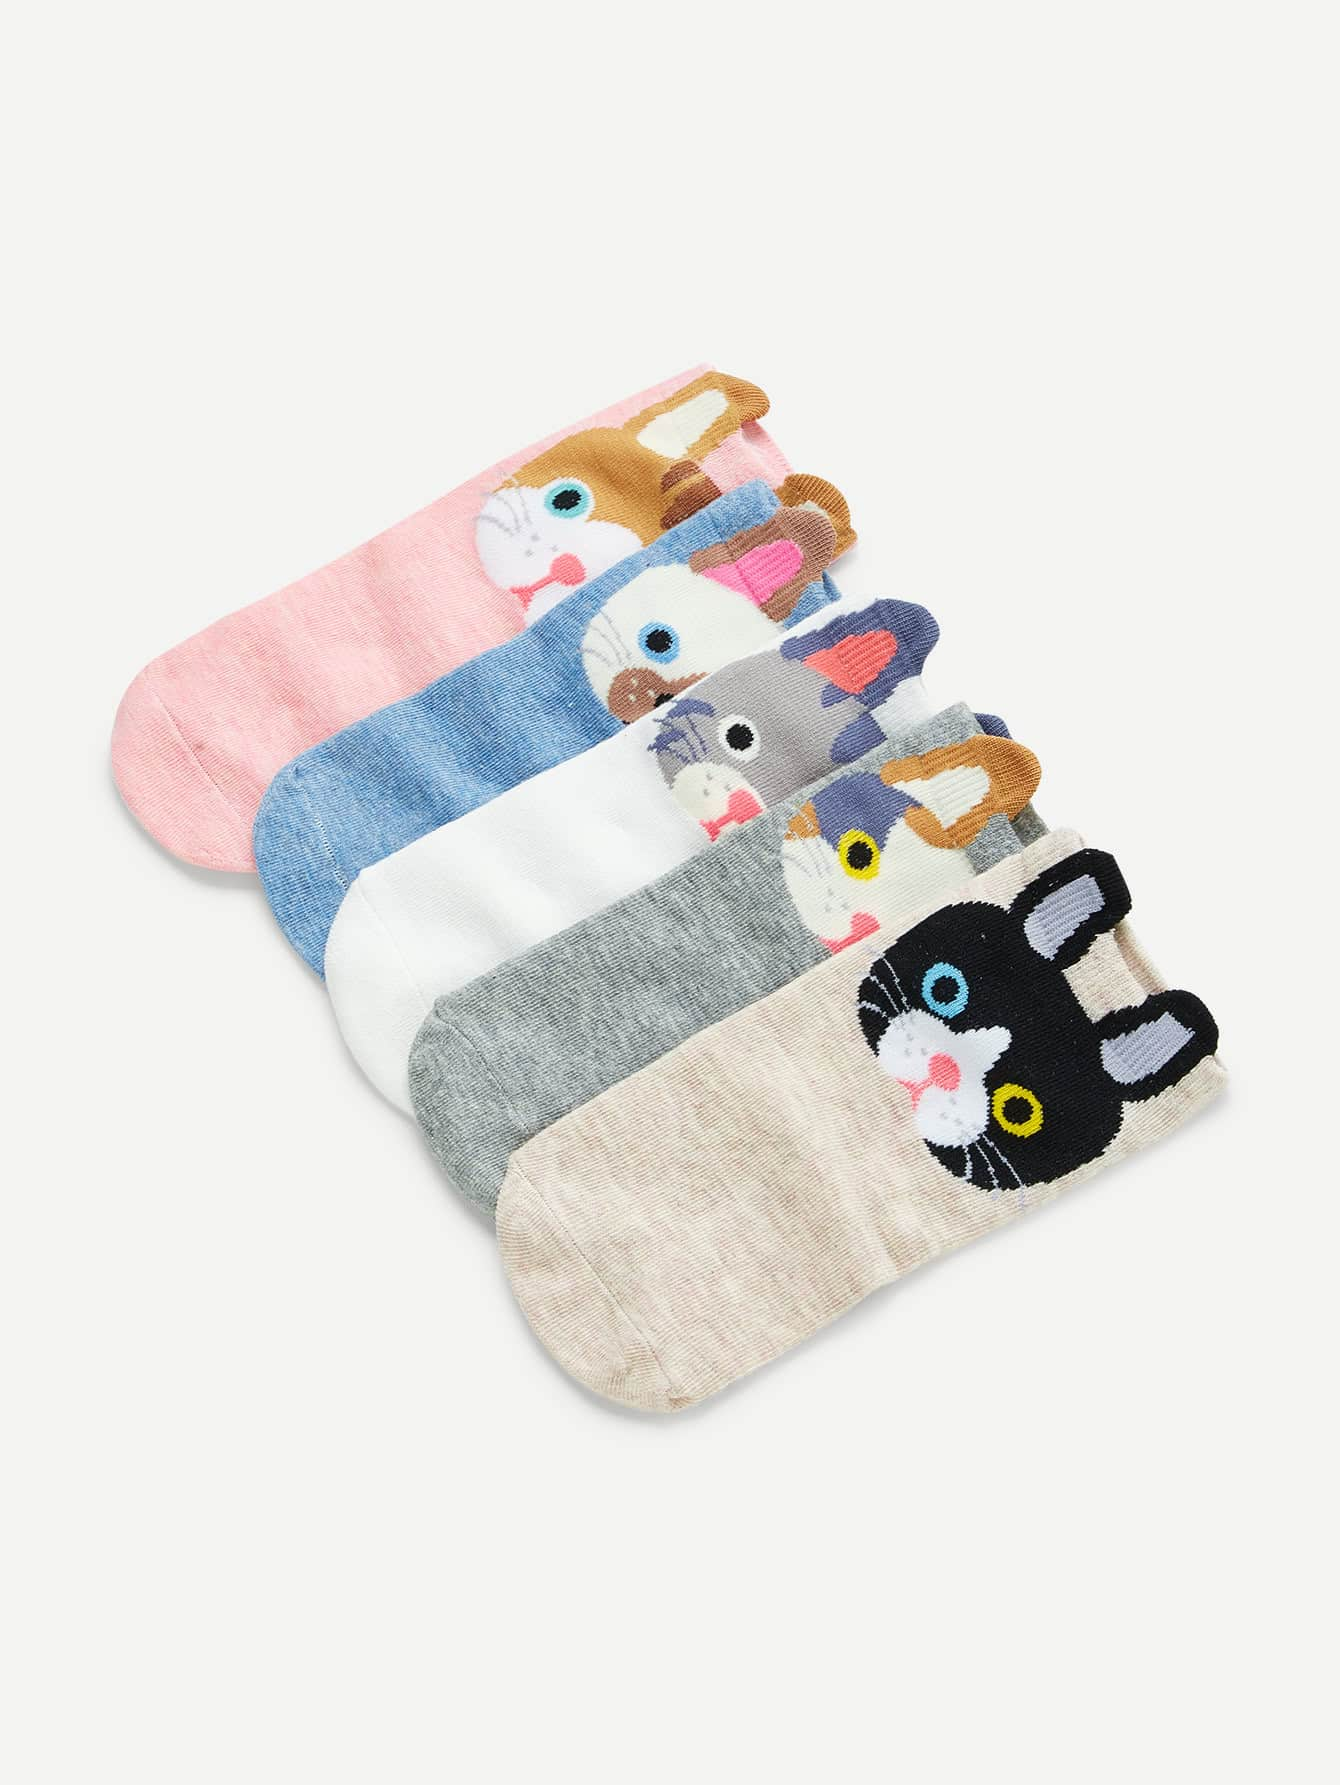 Animal Pattern Ankle socks 5pairs letters pattern kintting ankle socks